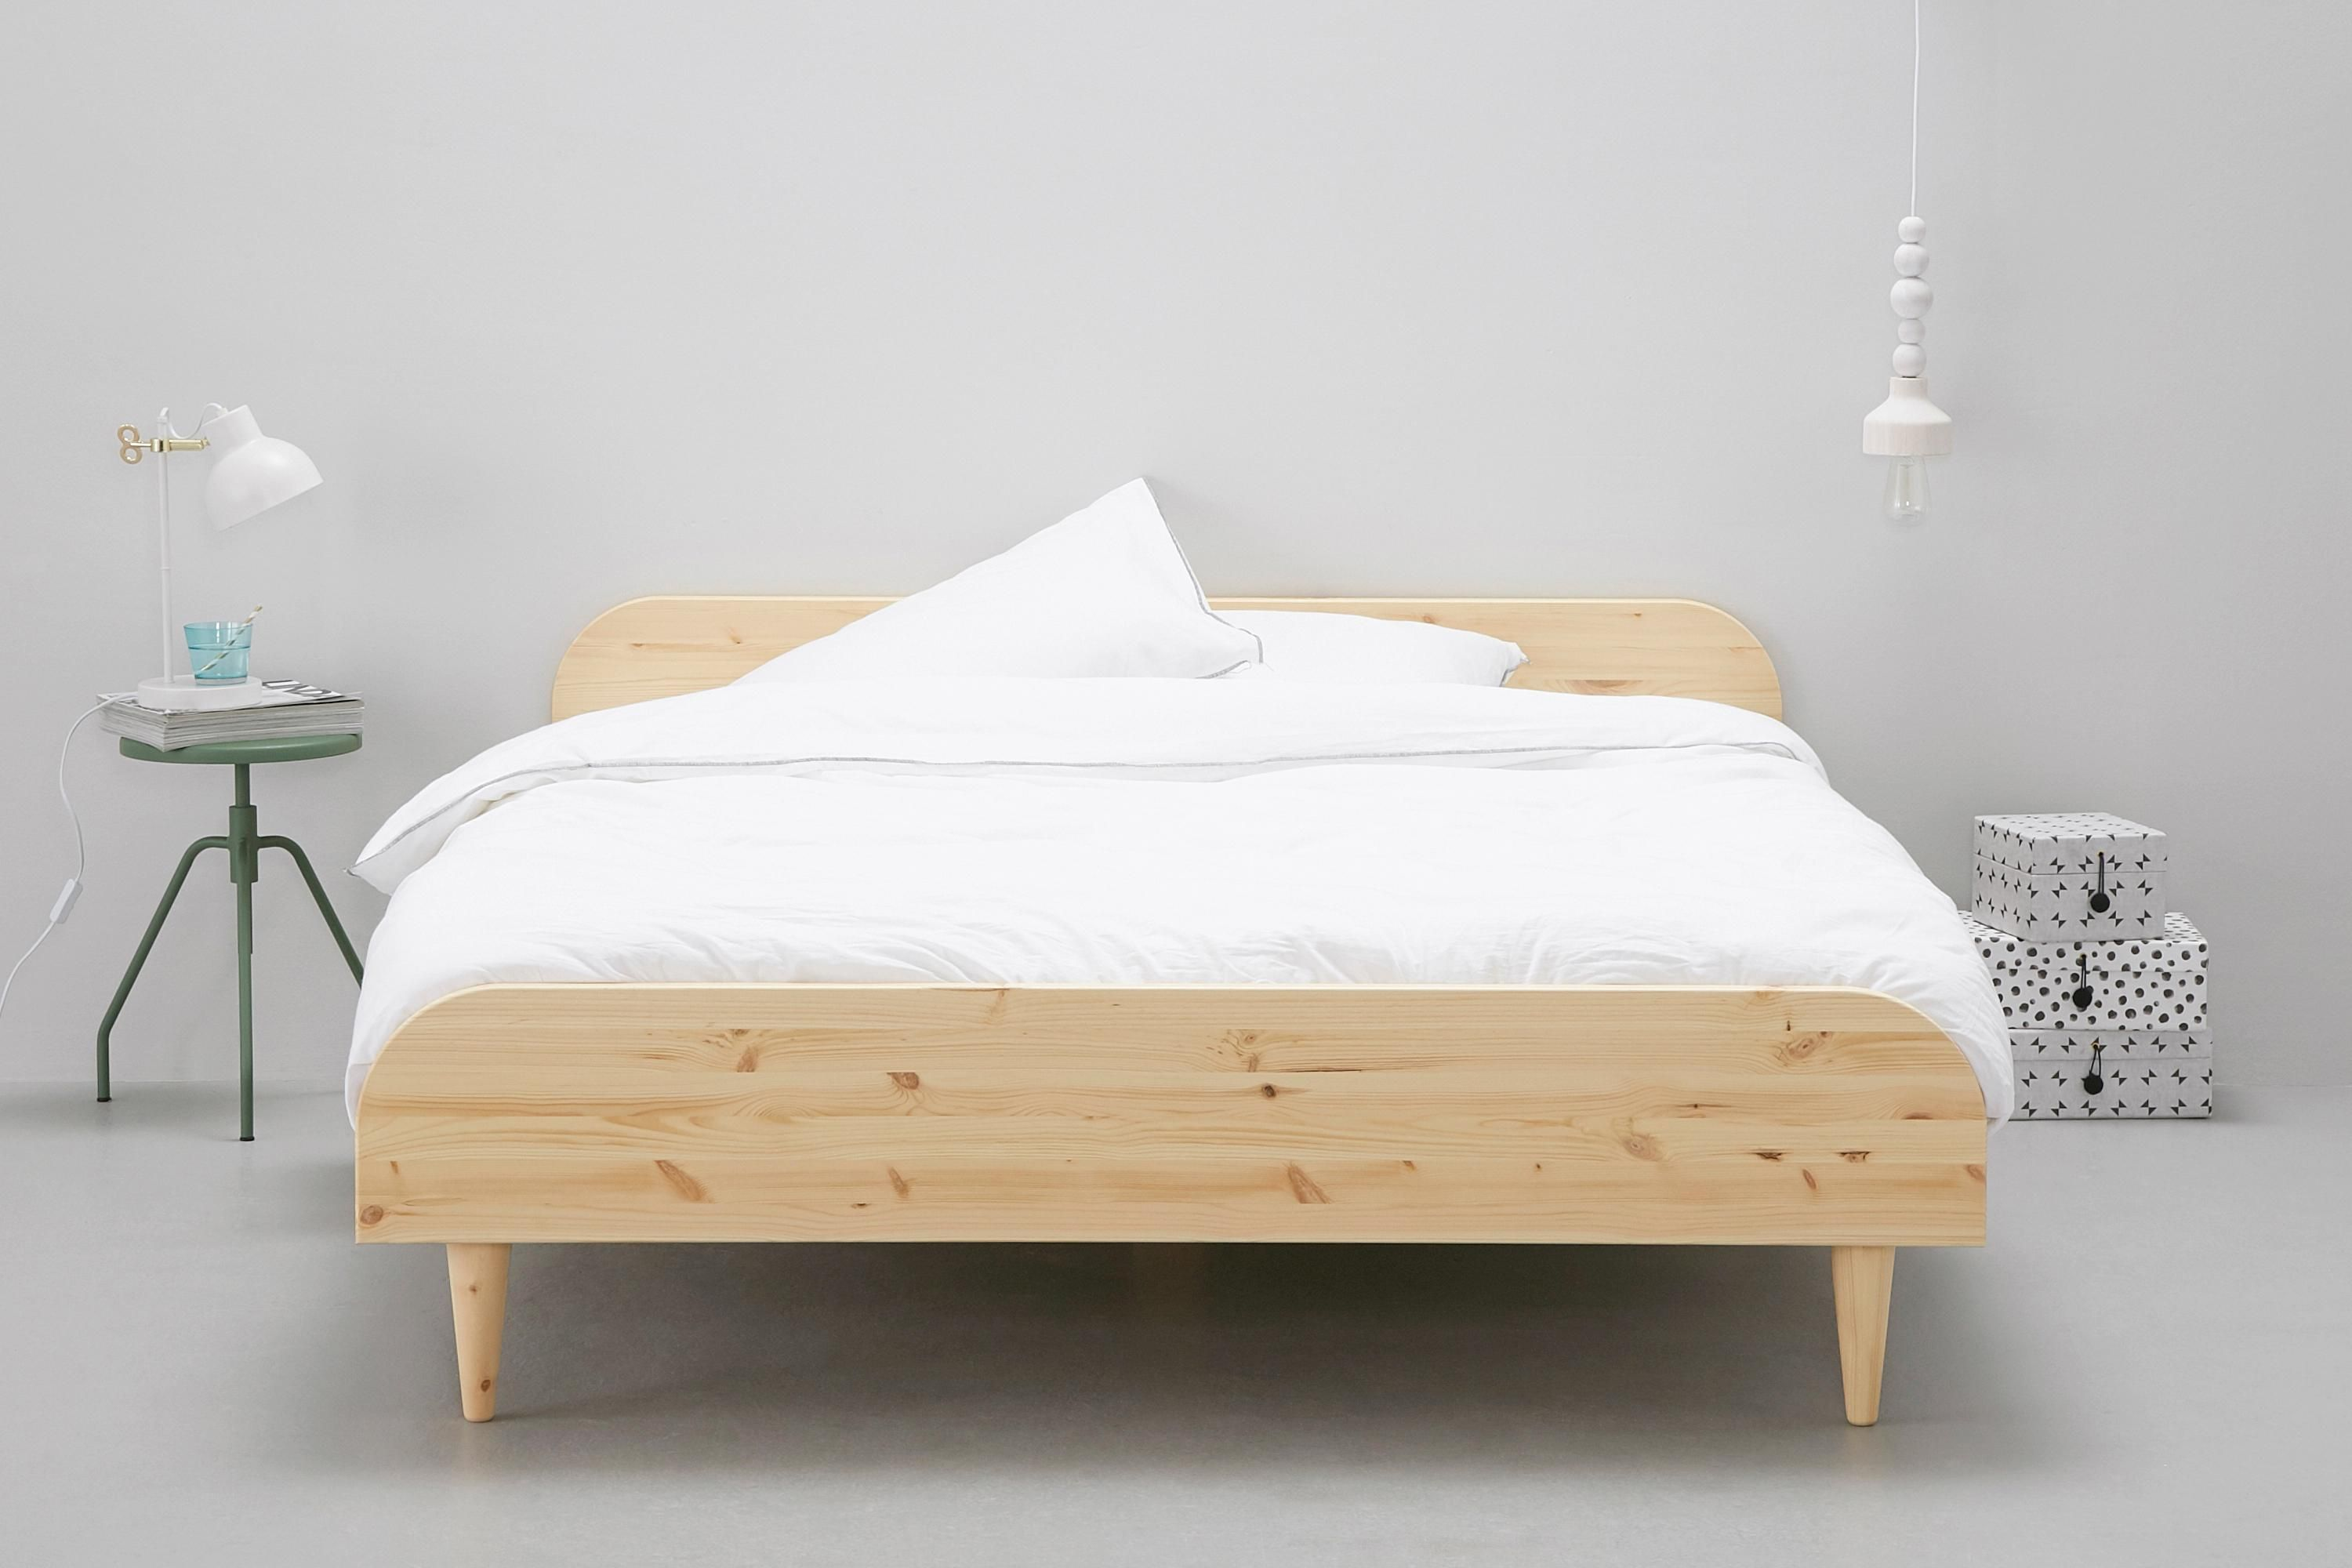 Bed 180x200 Hout.Bed Twist 180x200 Cm Bed In 2019 Bed Furniture Bed